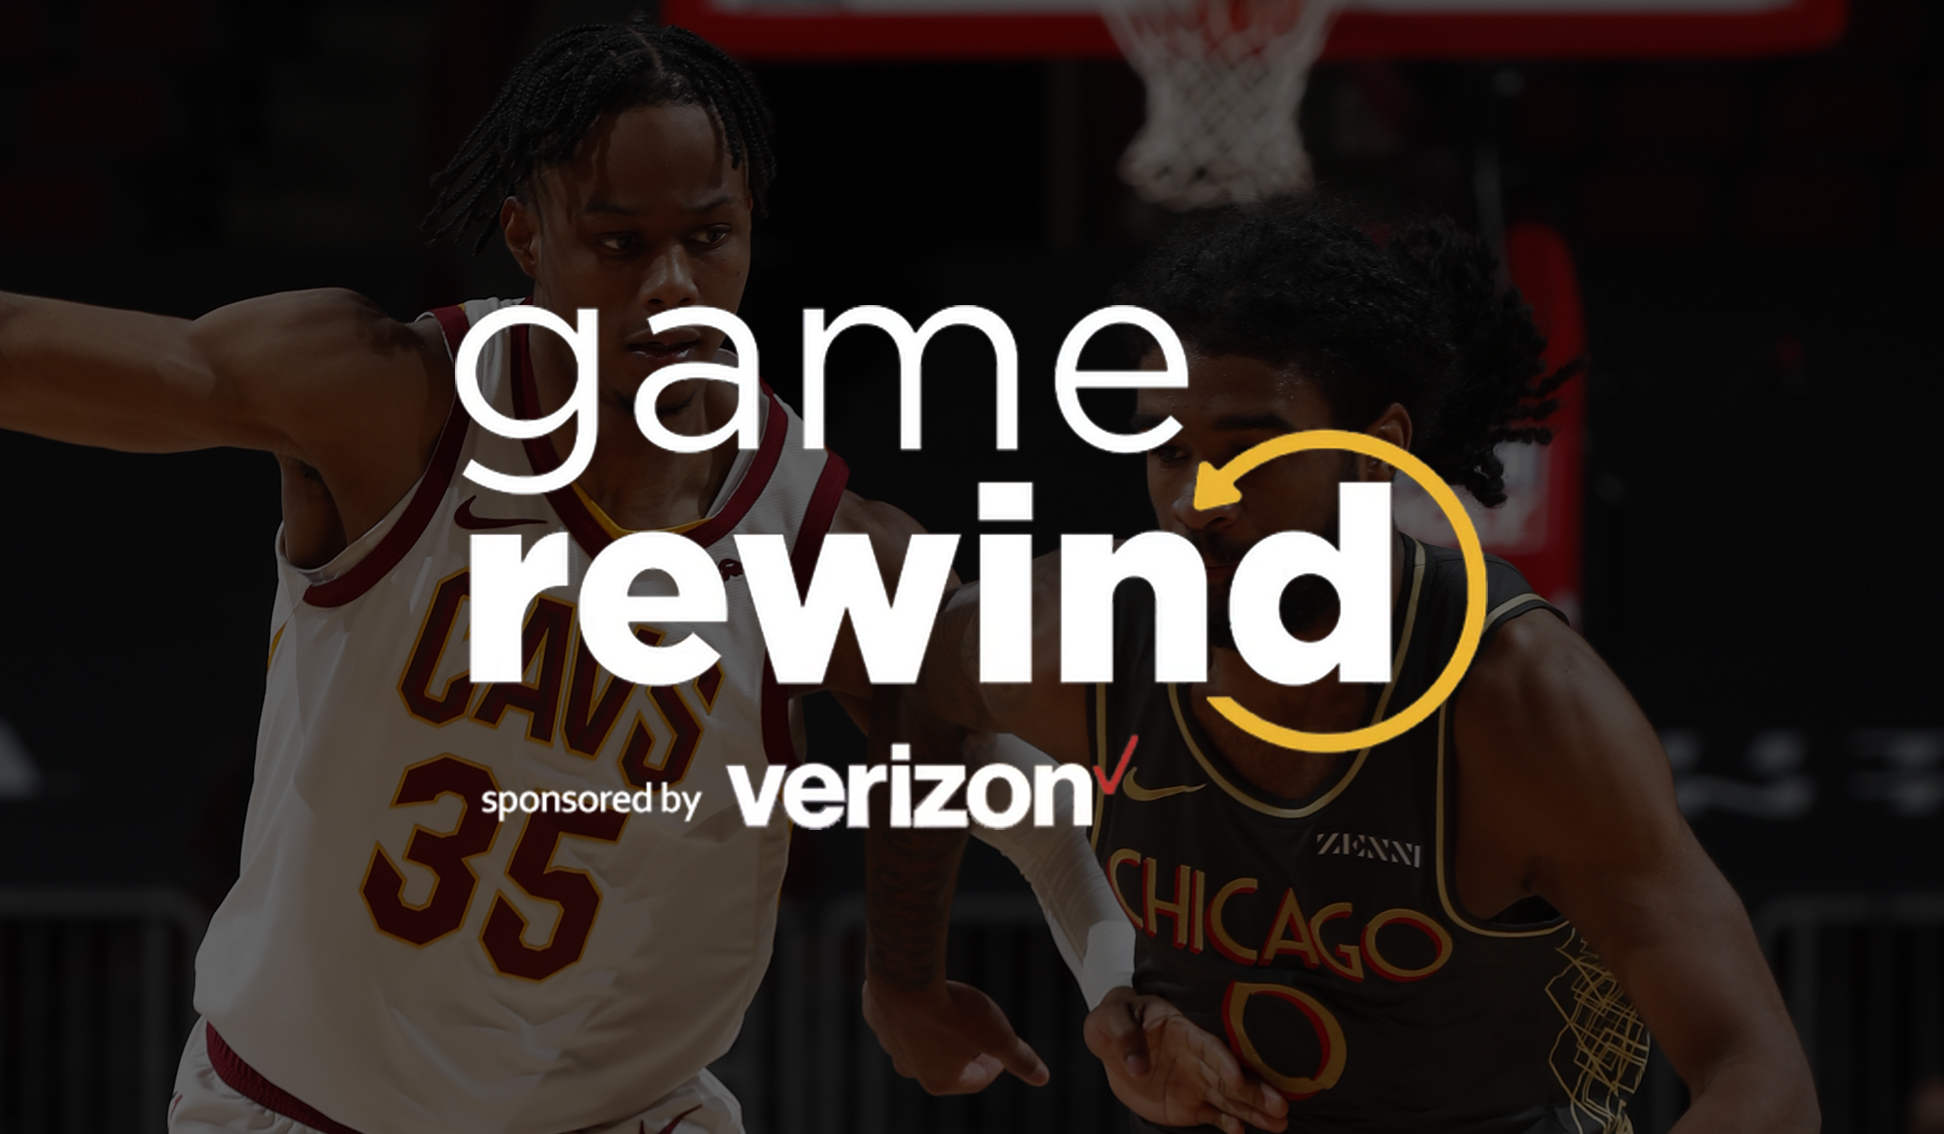 Verizon Game Rewind - Cavs at Bulls